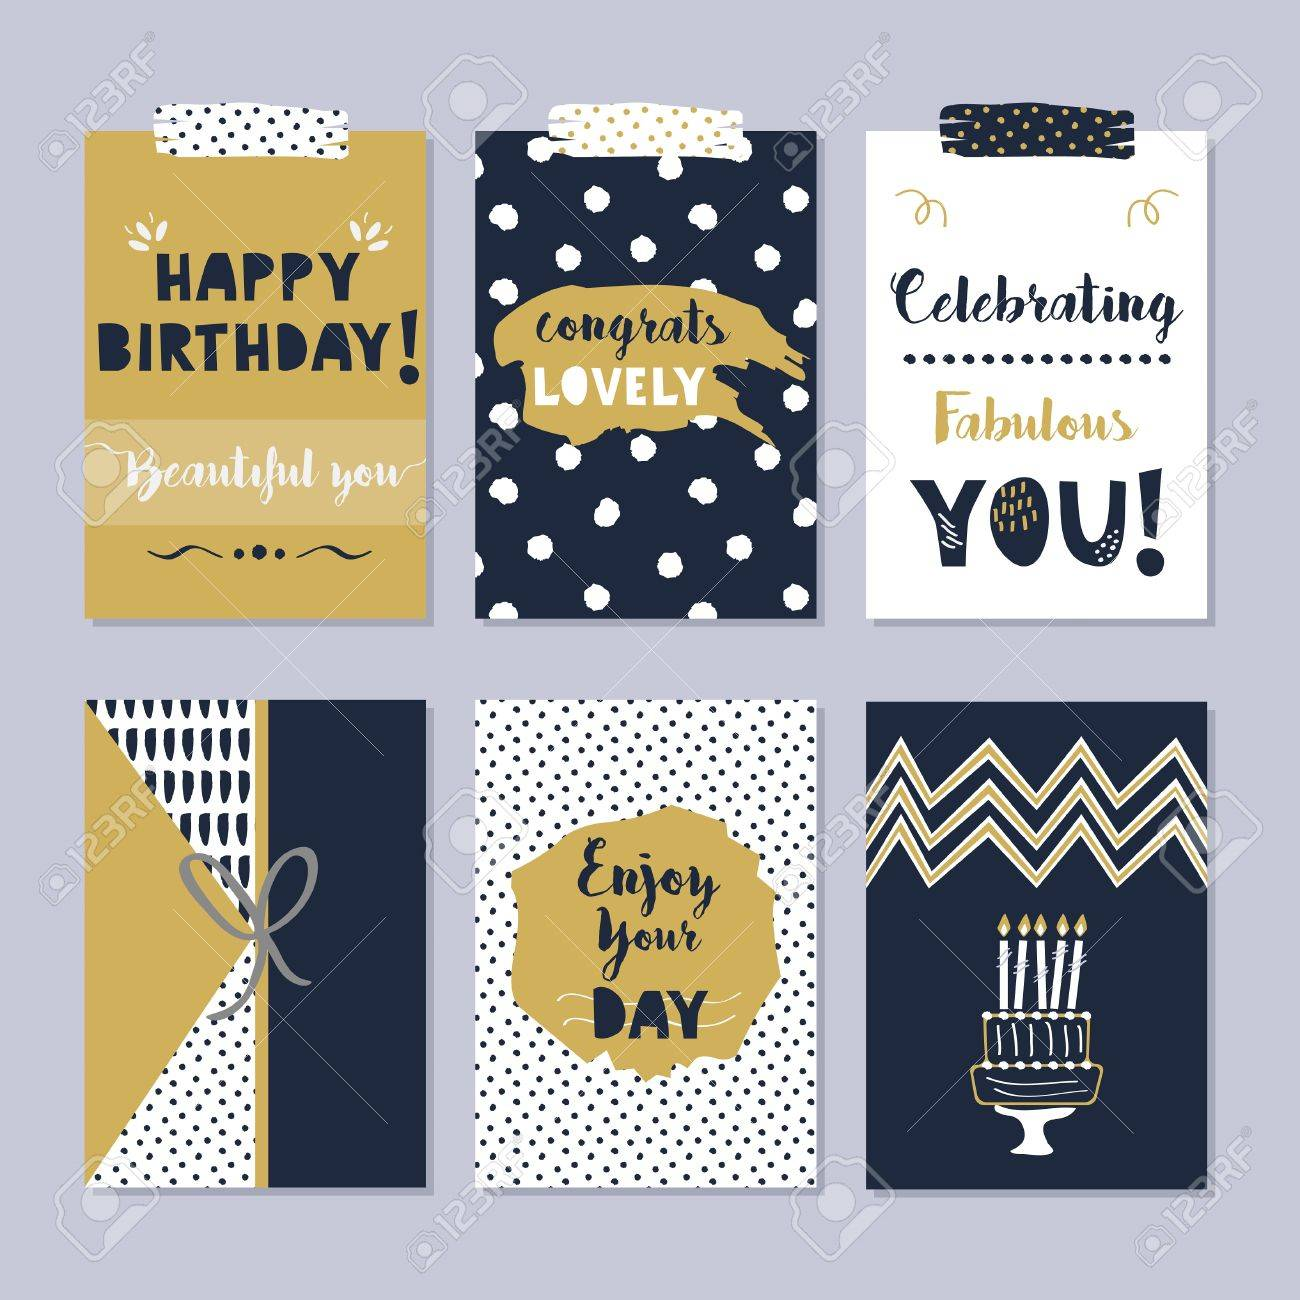 Golden and dark navy blue happy birthday cards set on trendy golden and dark navy blue happy birthday cards set on trendy gray background stock vector bookmarktalkfo Choice Image